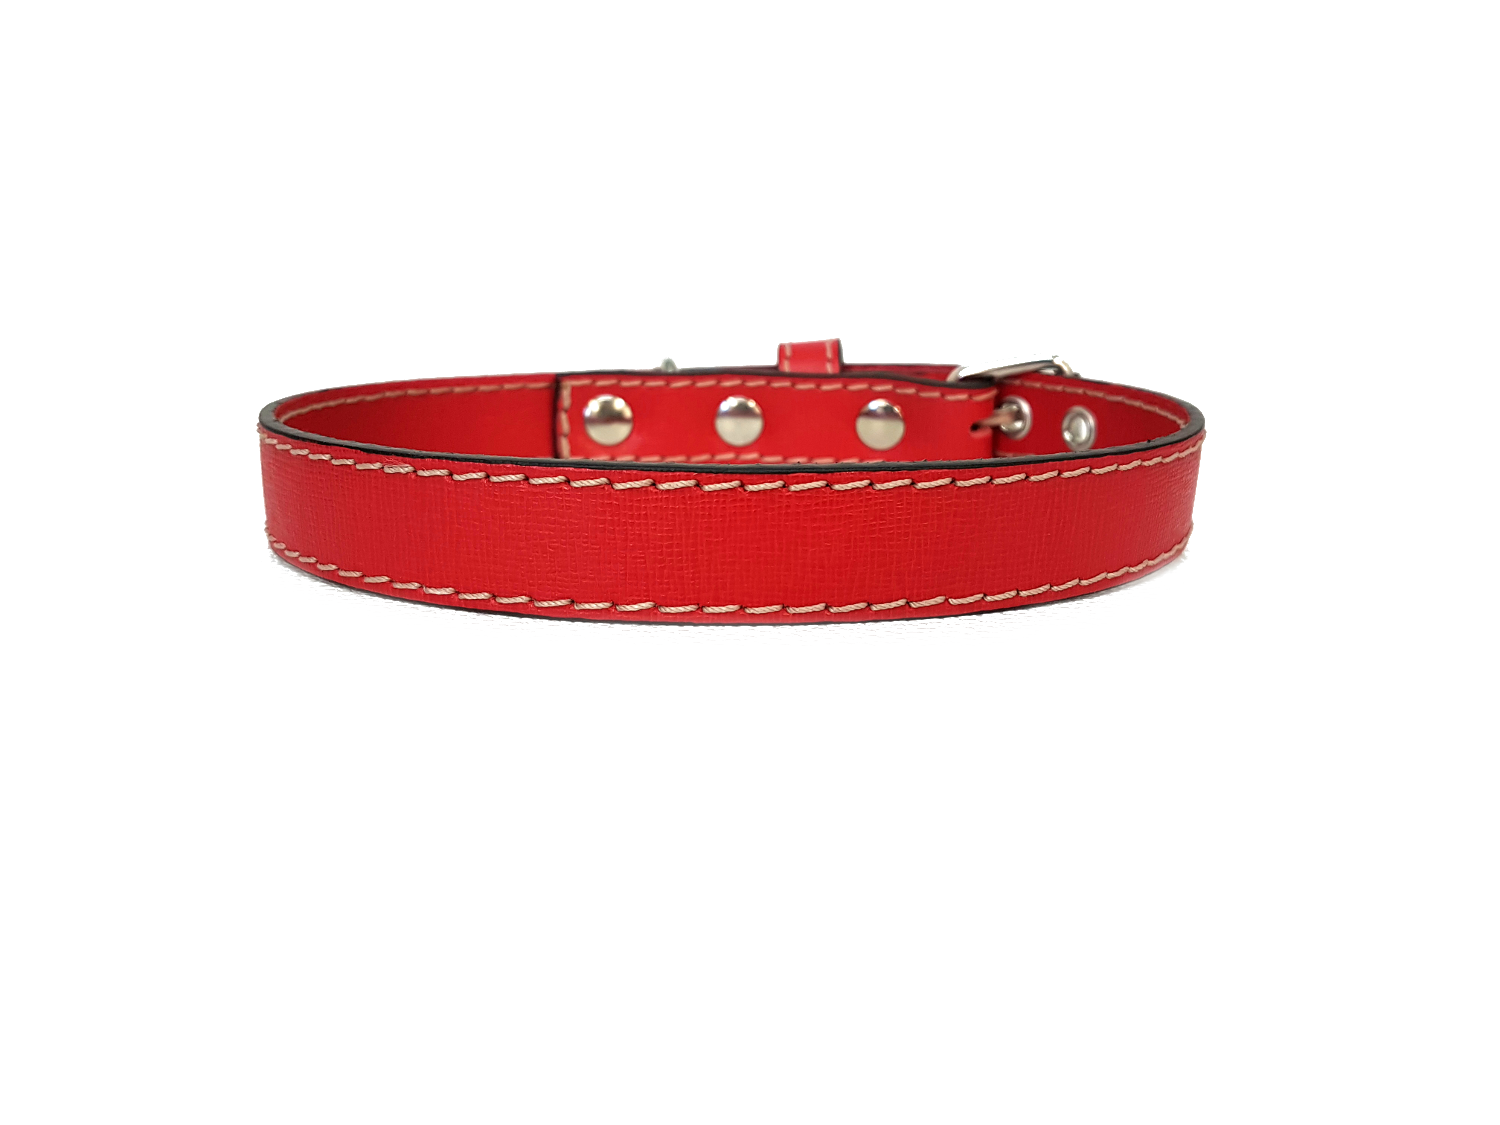 Rosso laserato / Lasered red (2 cm / 0,79 inches)